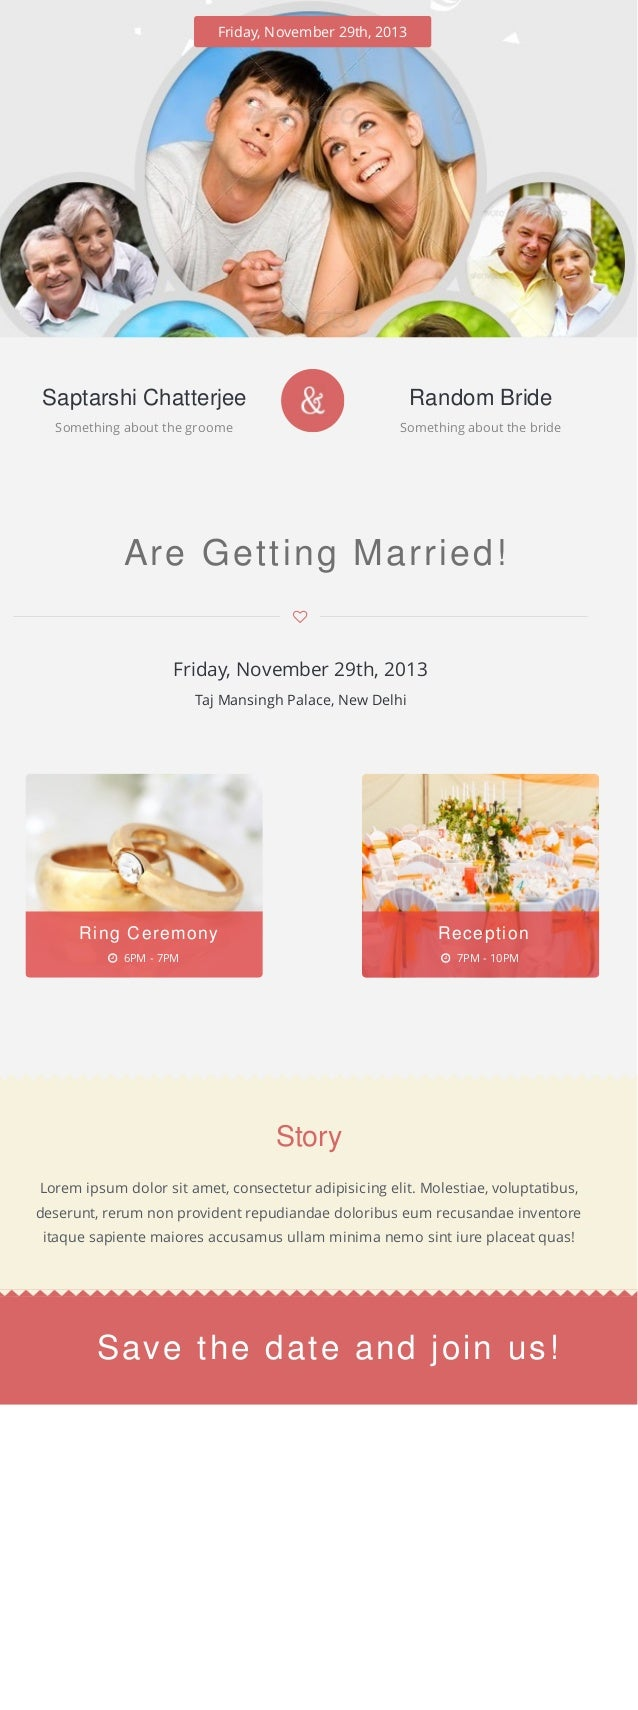 Friday, November 29th, 2013 Saptarshi Chatterjee Something about the groome Random Bride Something about the bride Are Get...